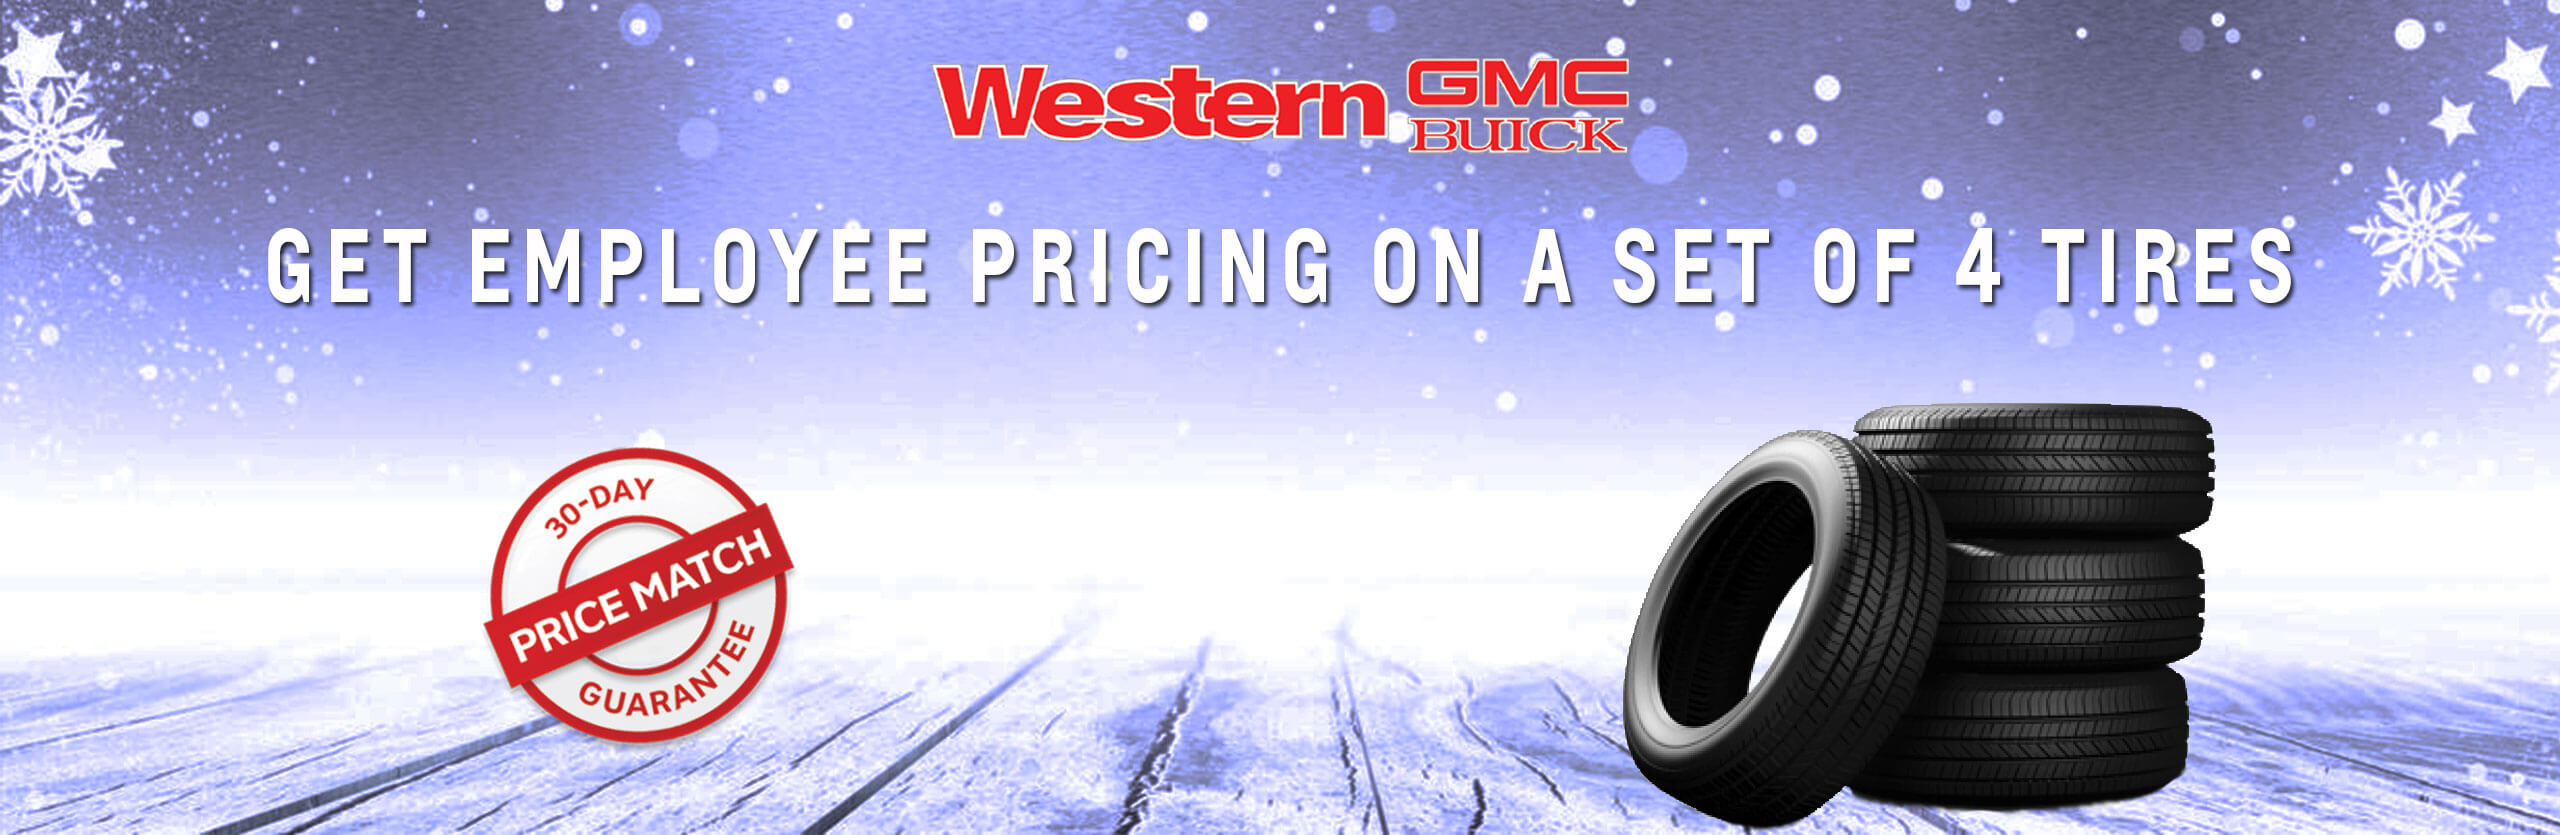 Winter Tire Employee Pricing